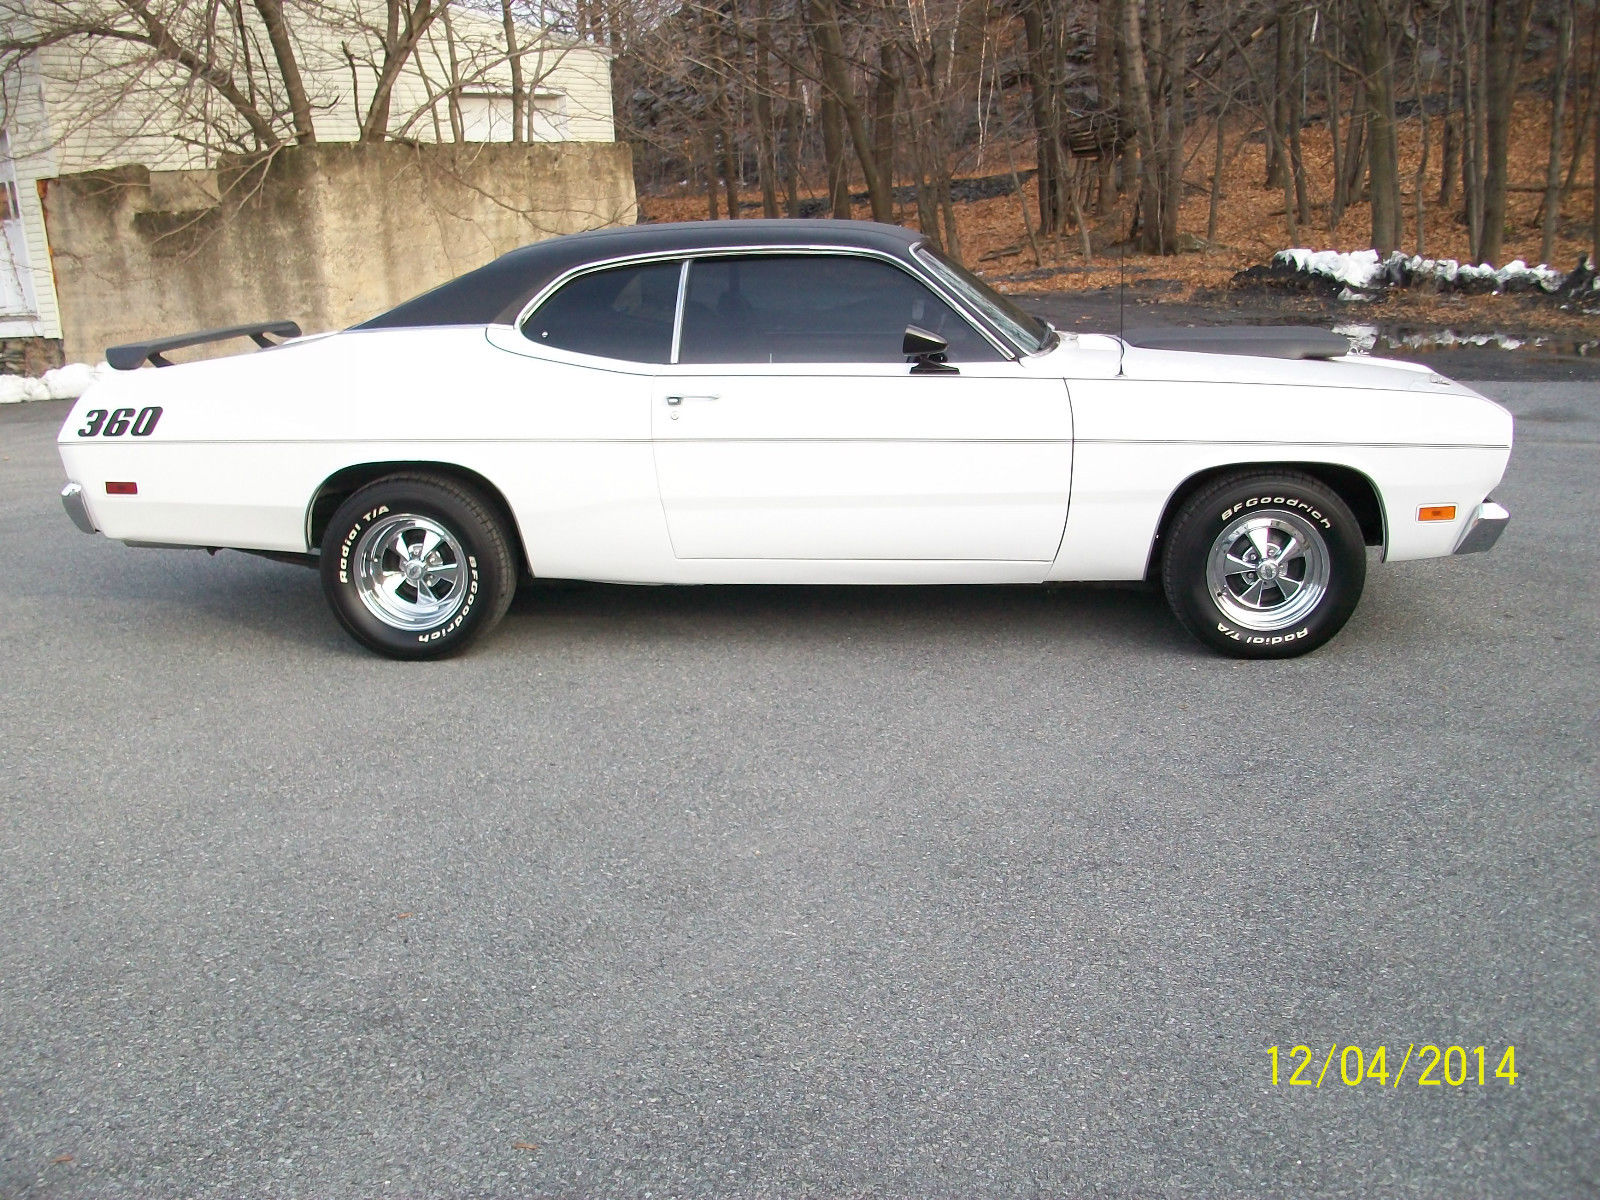 1971 mopar plymouth duster hot rod muscle car 360 crate v8 4 speed posi rear classic. Black Bedroom Furniture Sets. Home Design Ideas